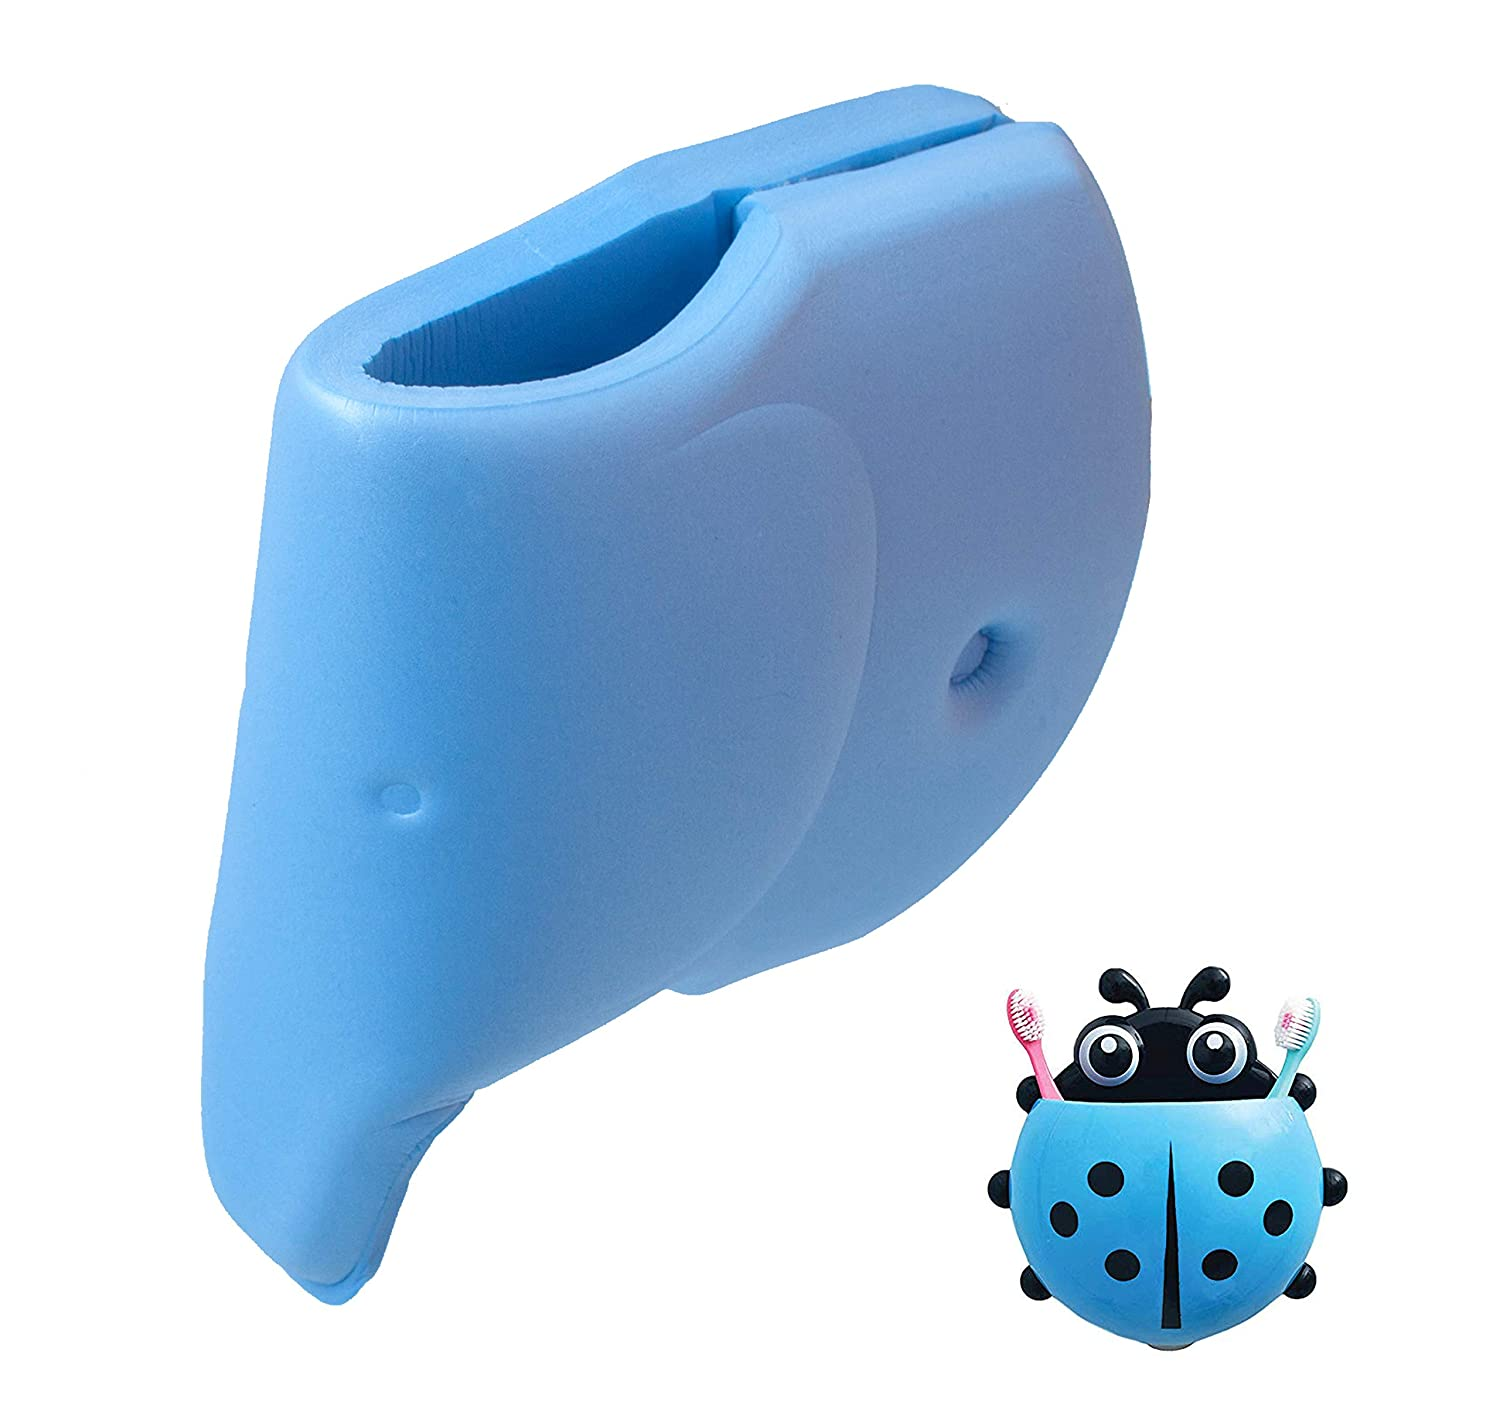 Bath Faucet Cover + Blue Ladybug Kids Toothbrush Holder - Tub Spout Cover for Baby - Bathtub Faucet Protector for Baby - Silicone Soft Spout Cover Baby Blue Elephant - Child Bathroom Cute Accessories Comfylife